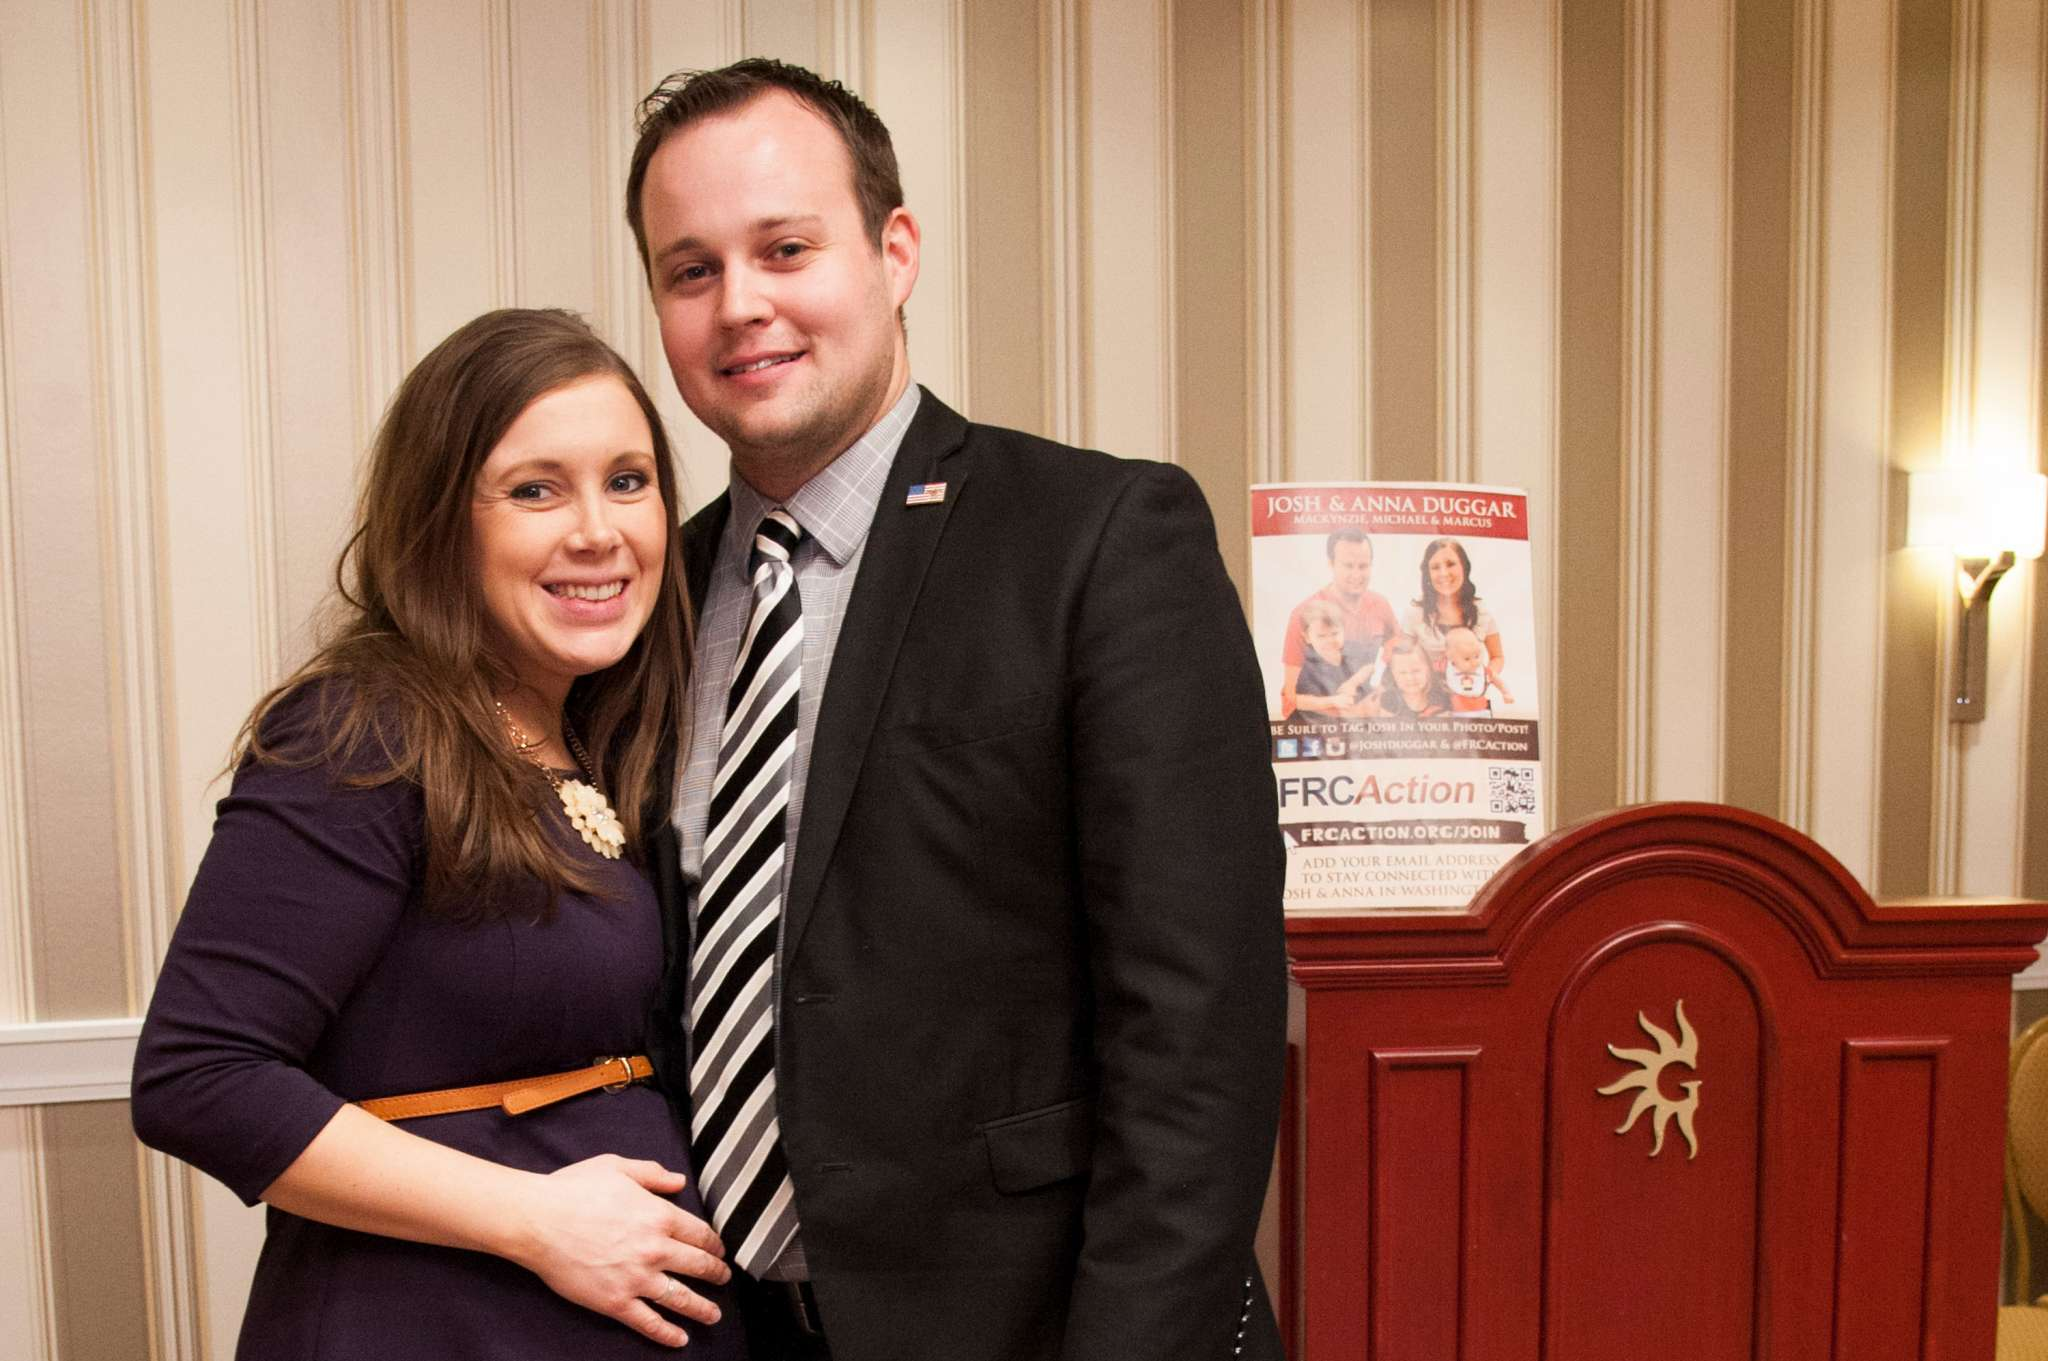 josh-duggar-requests-release-on-bail-to-go-home-to-pregnant-wife-amid-cp-scandal